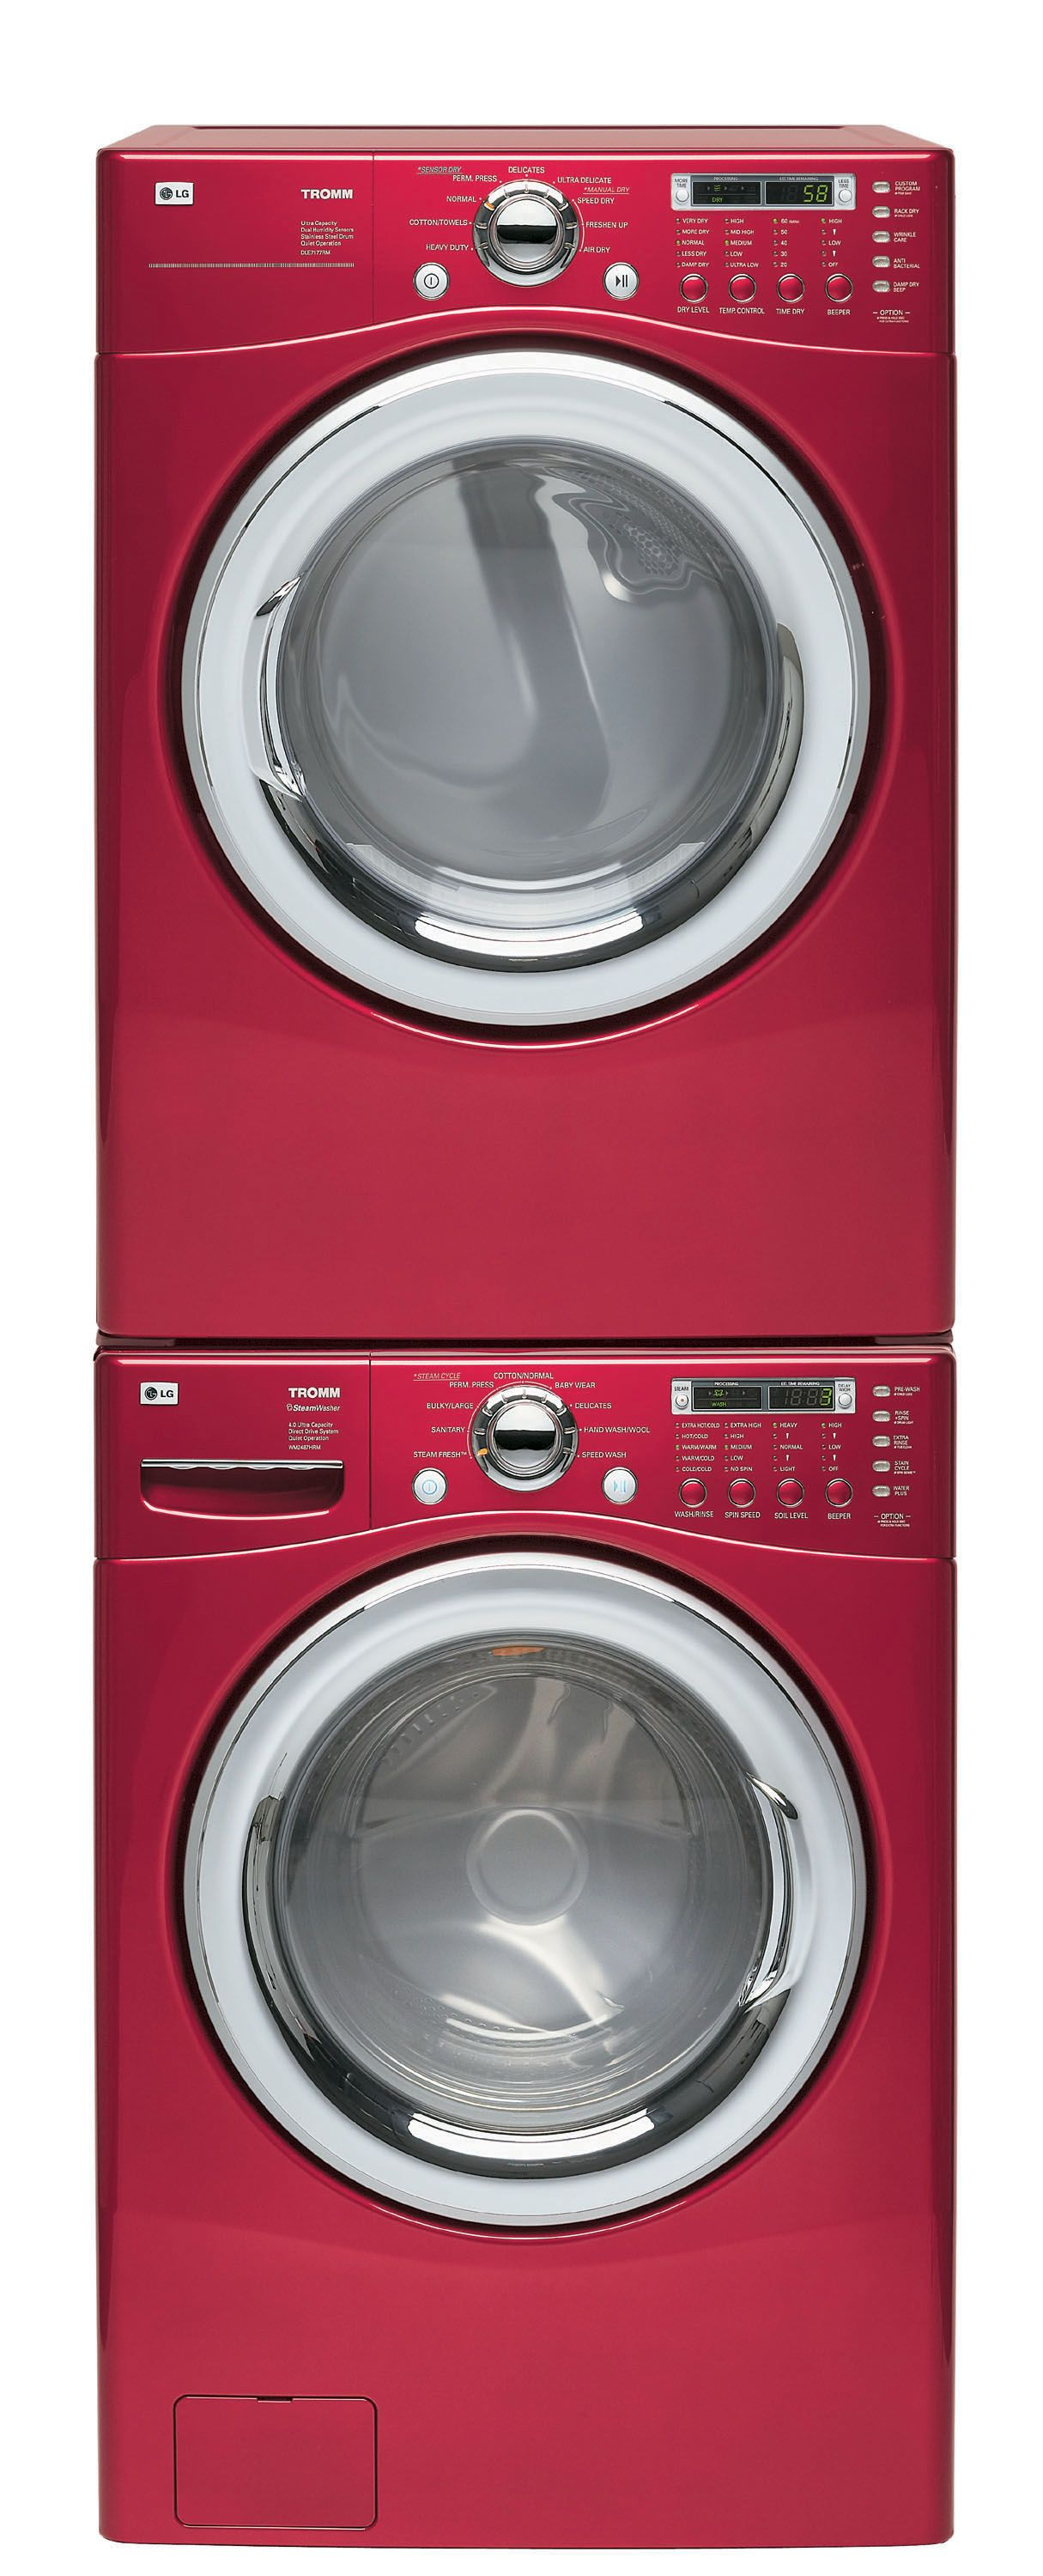 Lg Stackable Washer Dryer Laundry Room Storage Laundry Room Storage Shelves Washer And Dryer